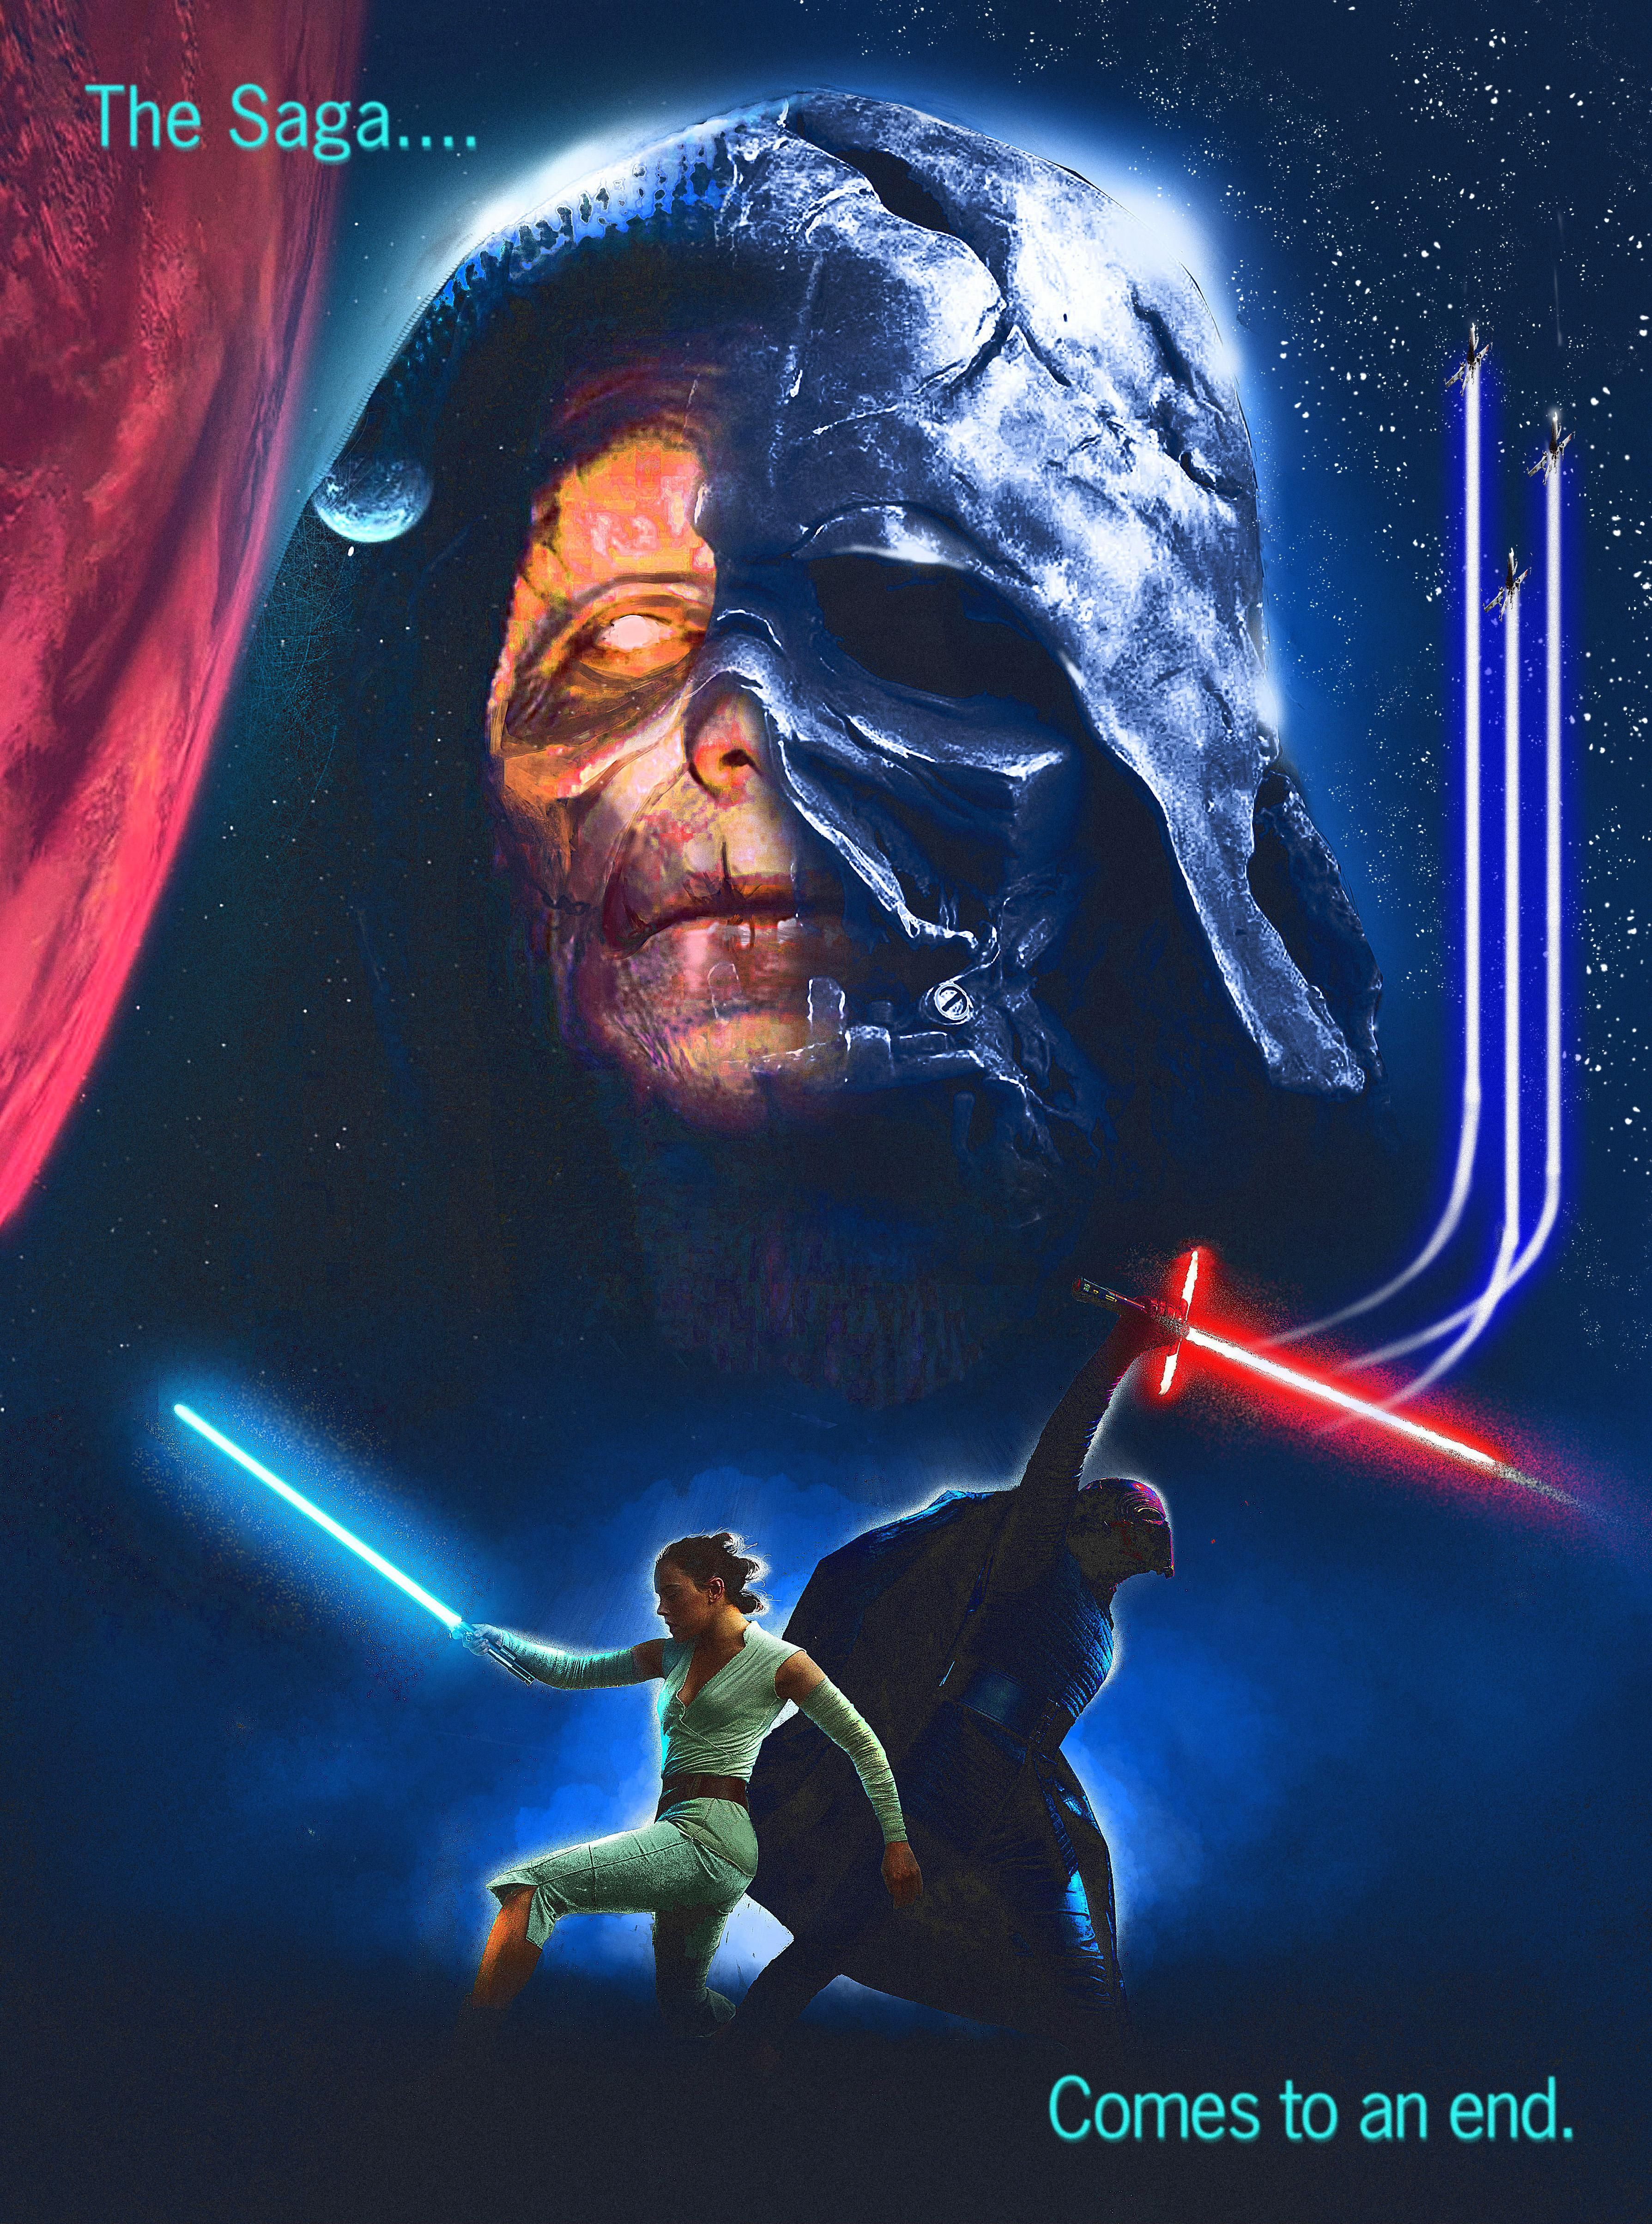 My 80 S Inspired Rise Of Skywalker Poster Starwarsspeculation Star Wars Pictures Star Wars Movies Posters Star Wars History